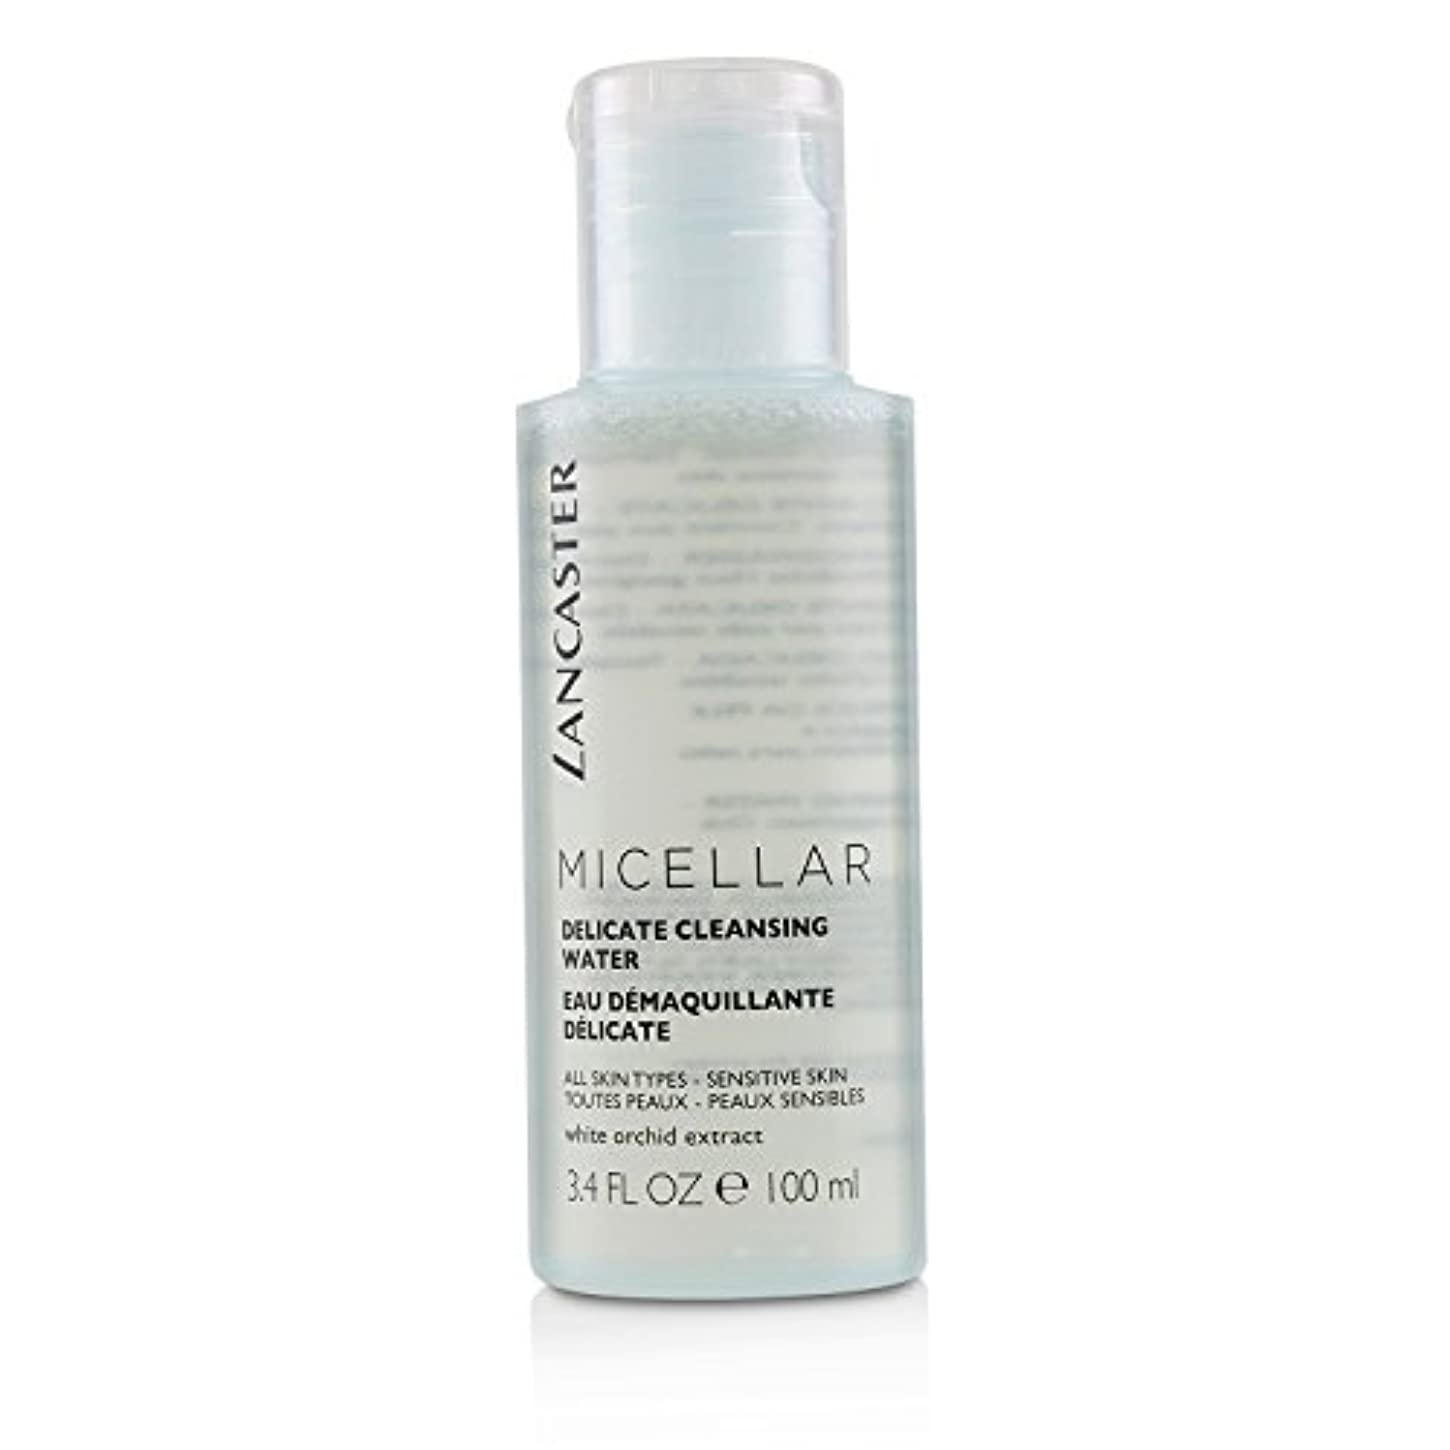 接続詞爆発物ソロランカスター Micellar Delicate Cleansing Water - All Skin Types, Including Sensitive Skin 100ml/3.4oz並行輸入品